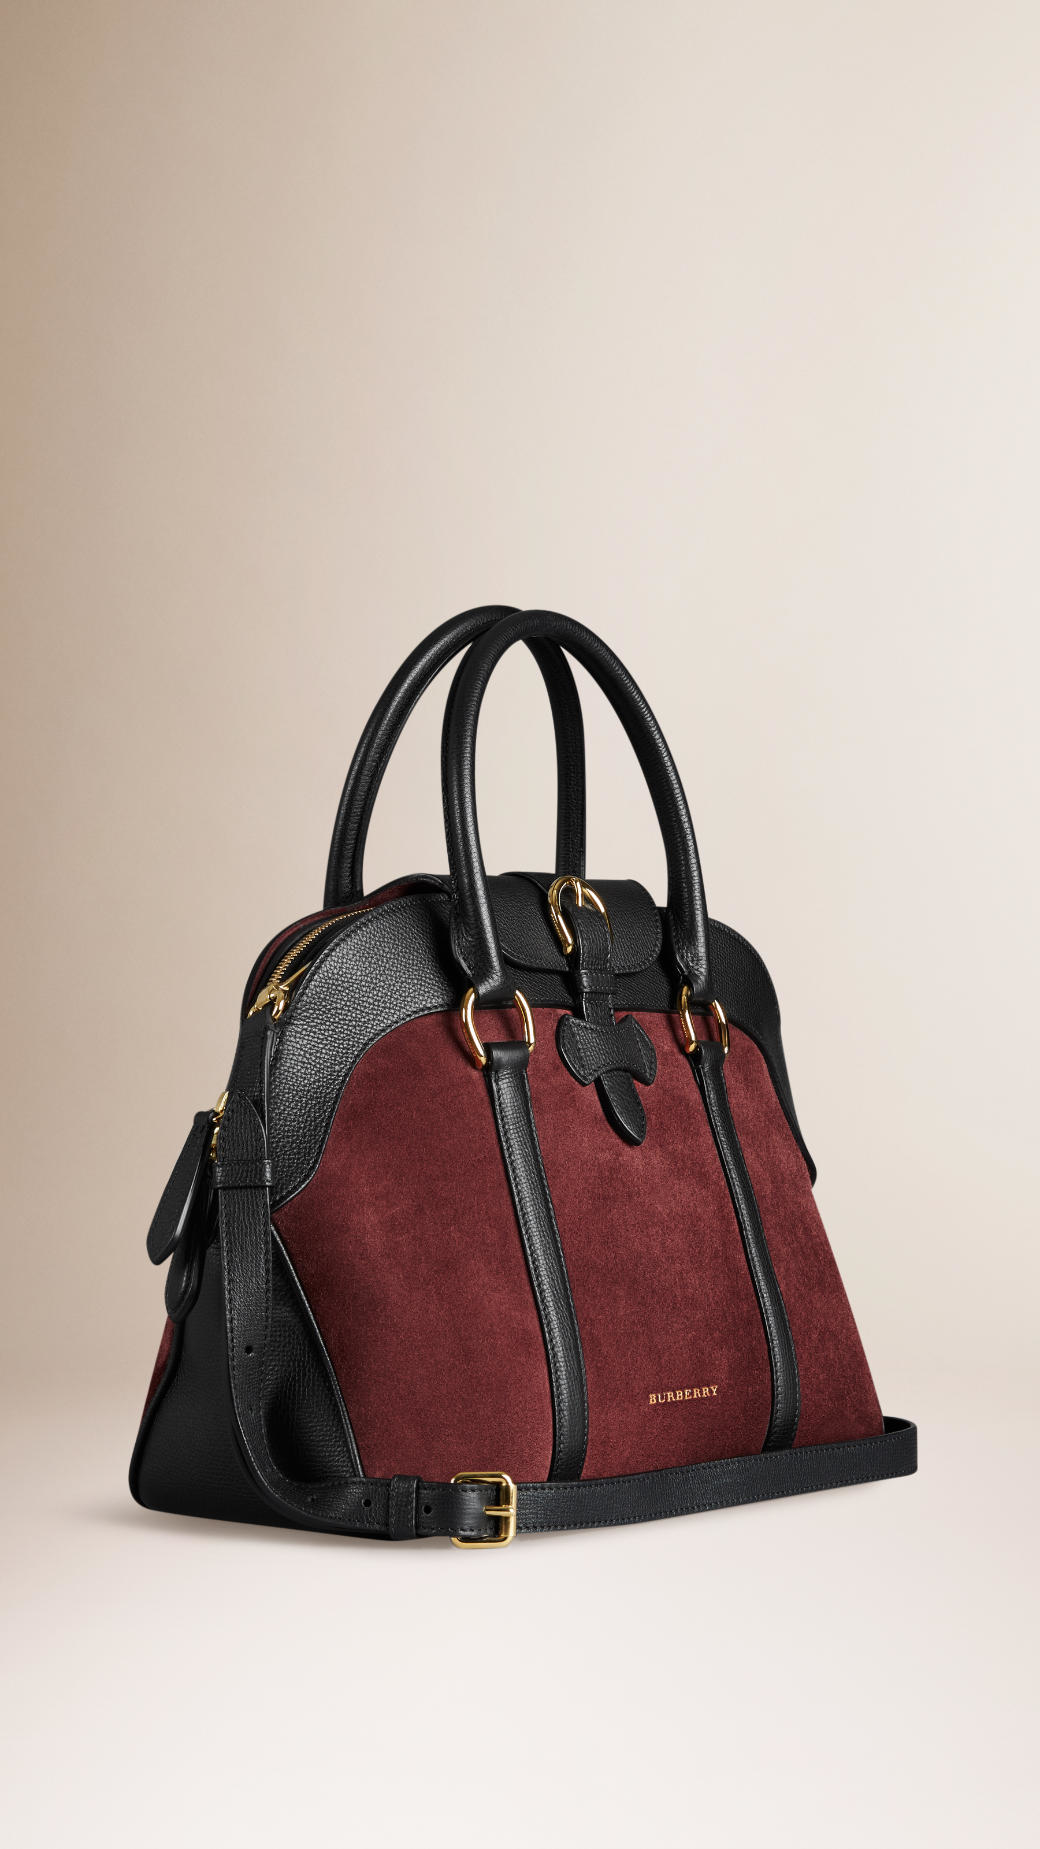 36848ffcaf2f Lyst Burberry Suede And Leather Bowling Bag In Black